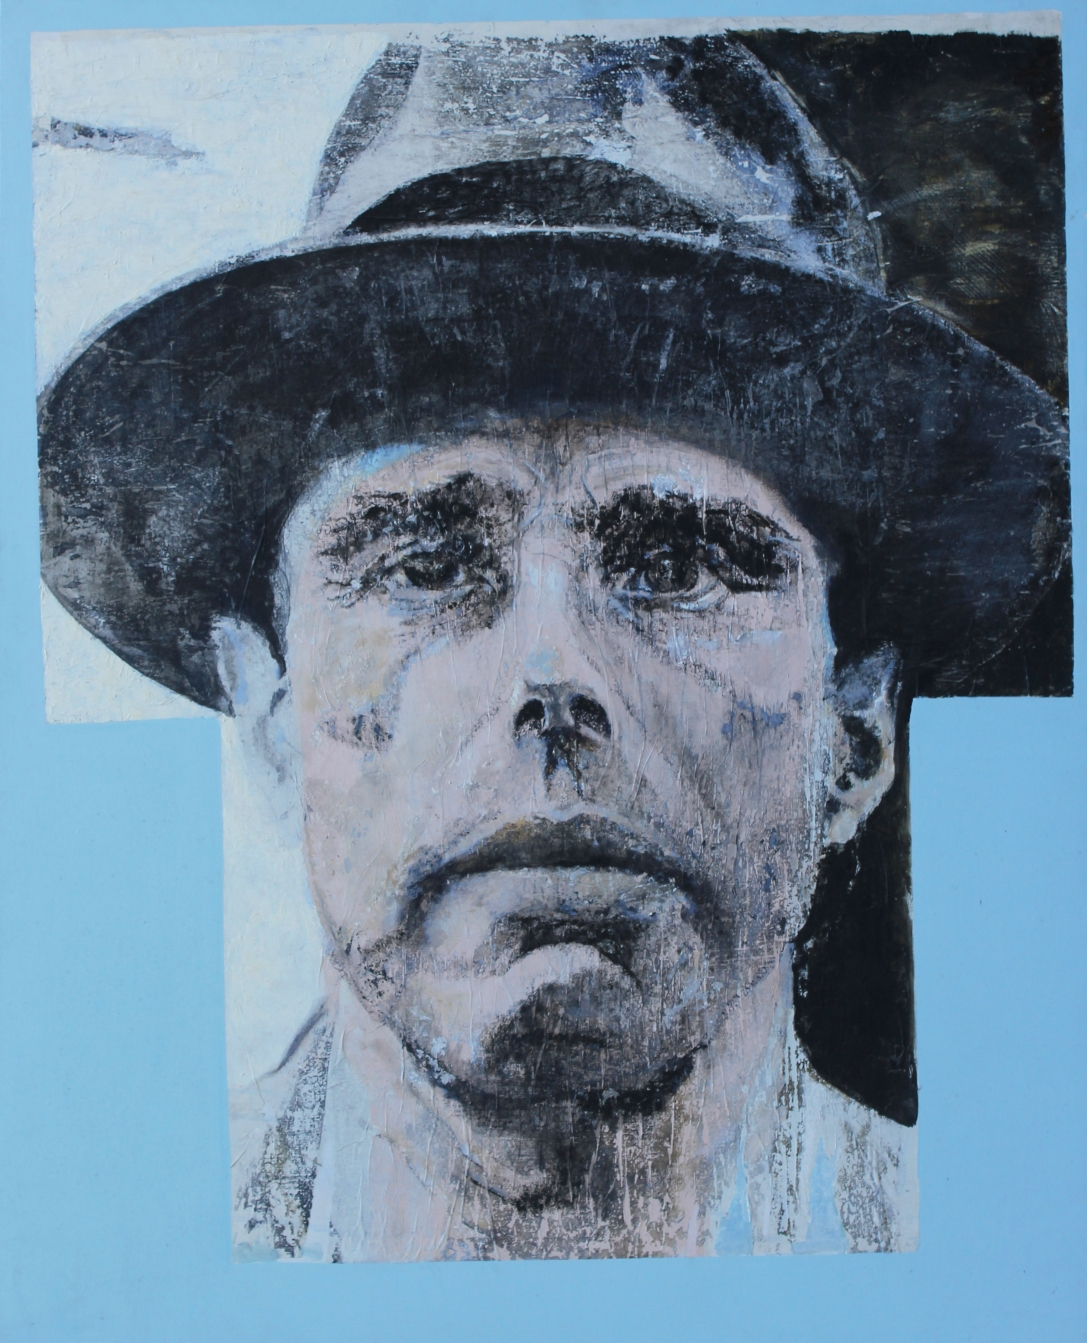 Morphing – Beuys and the Homo sacer. Painting on wood with glue and chalk, paper, acrylic and oil paints. Size (cm) 100 x 80